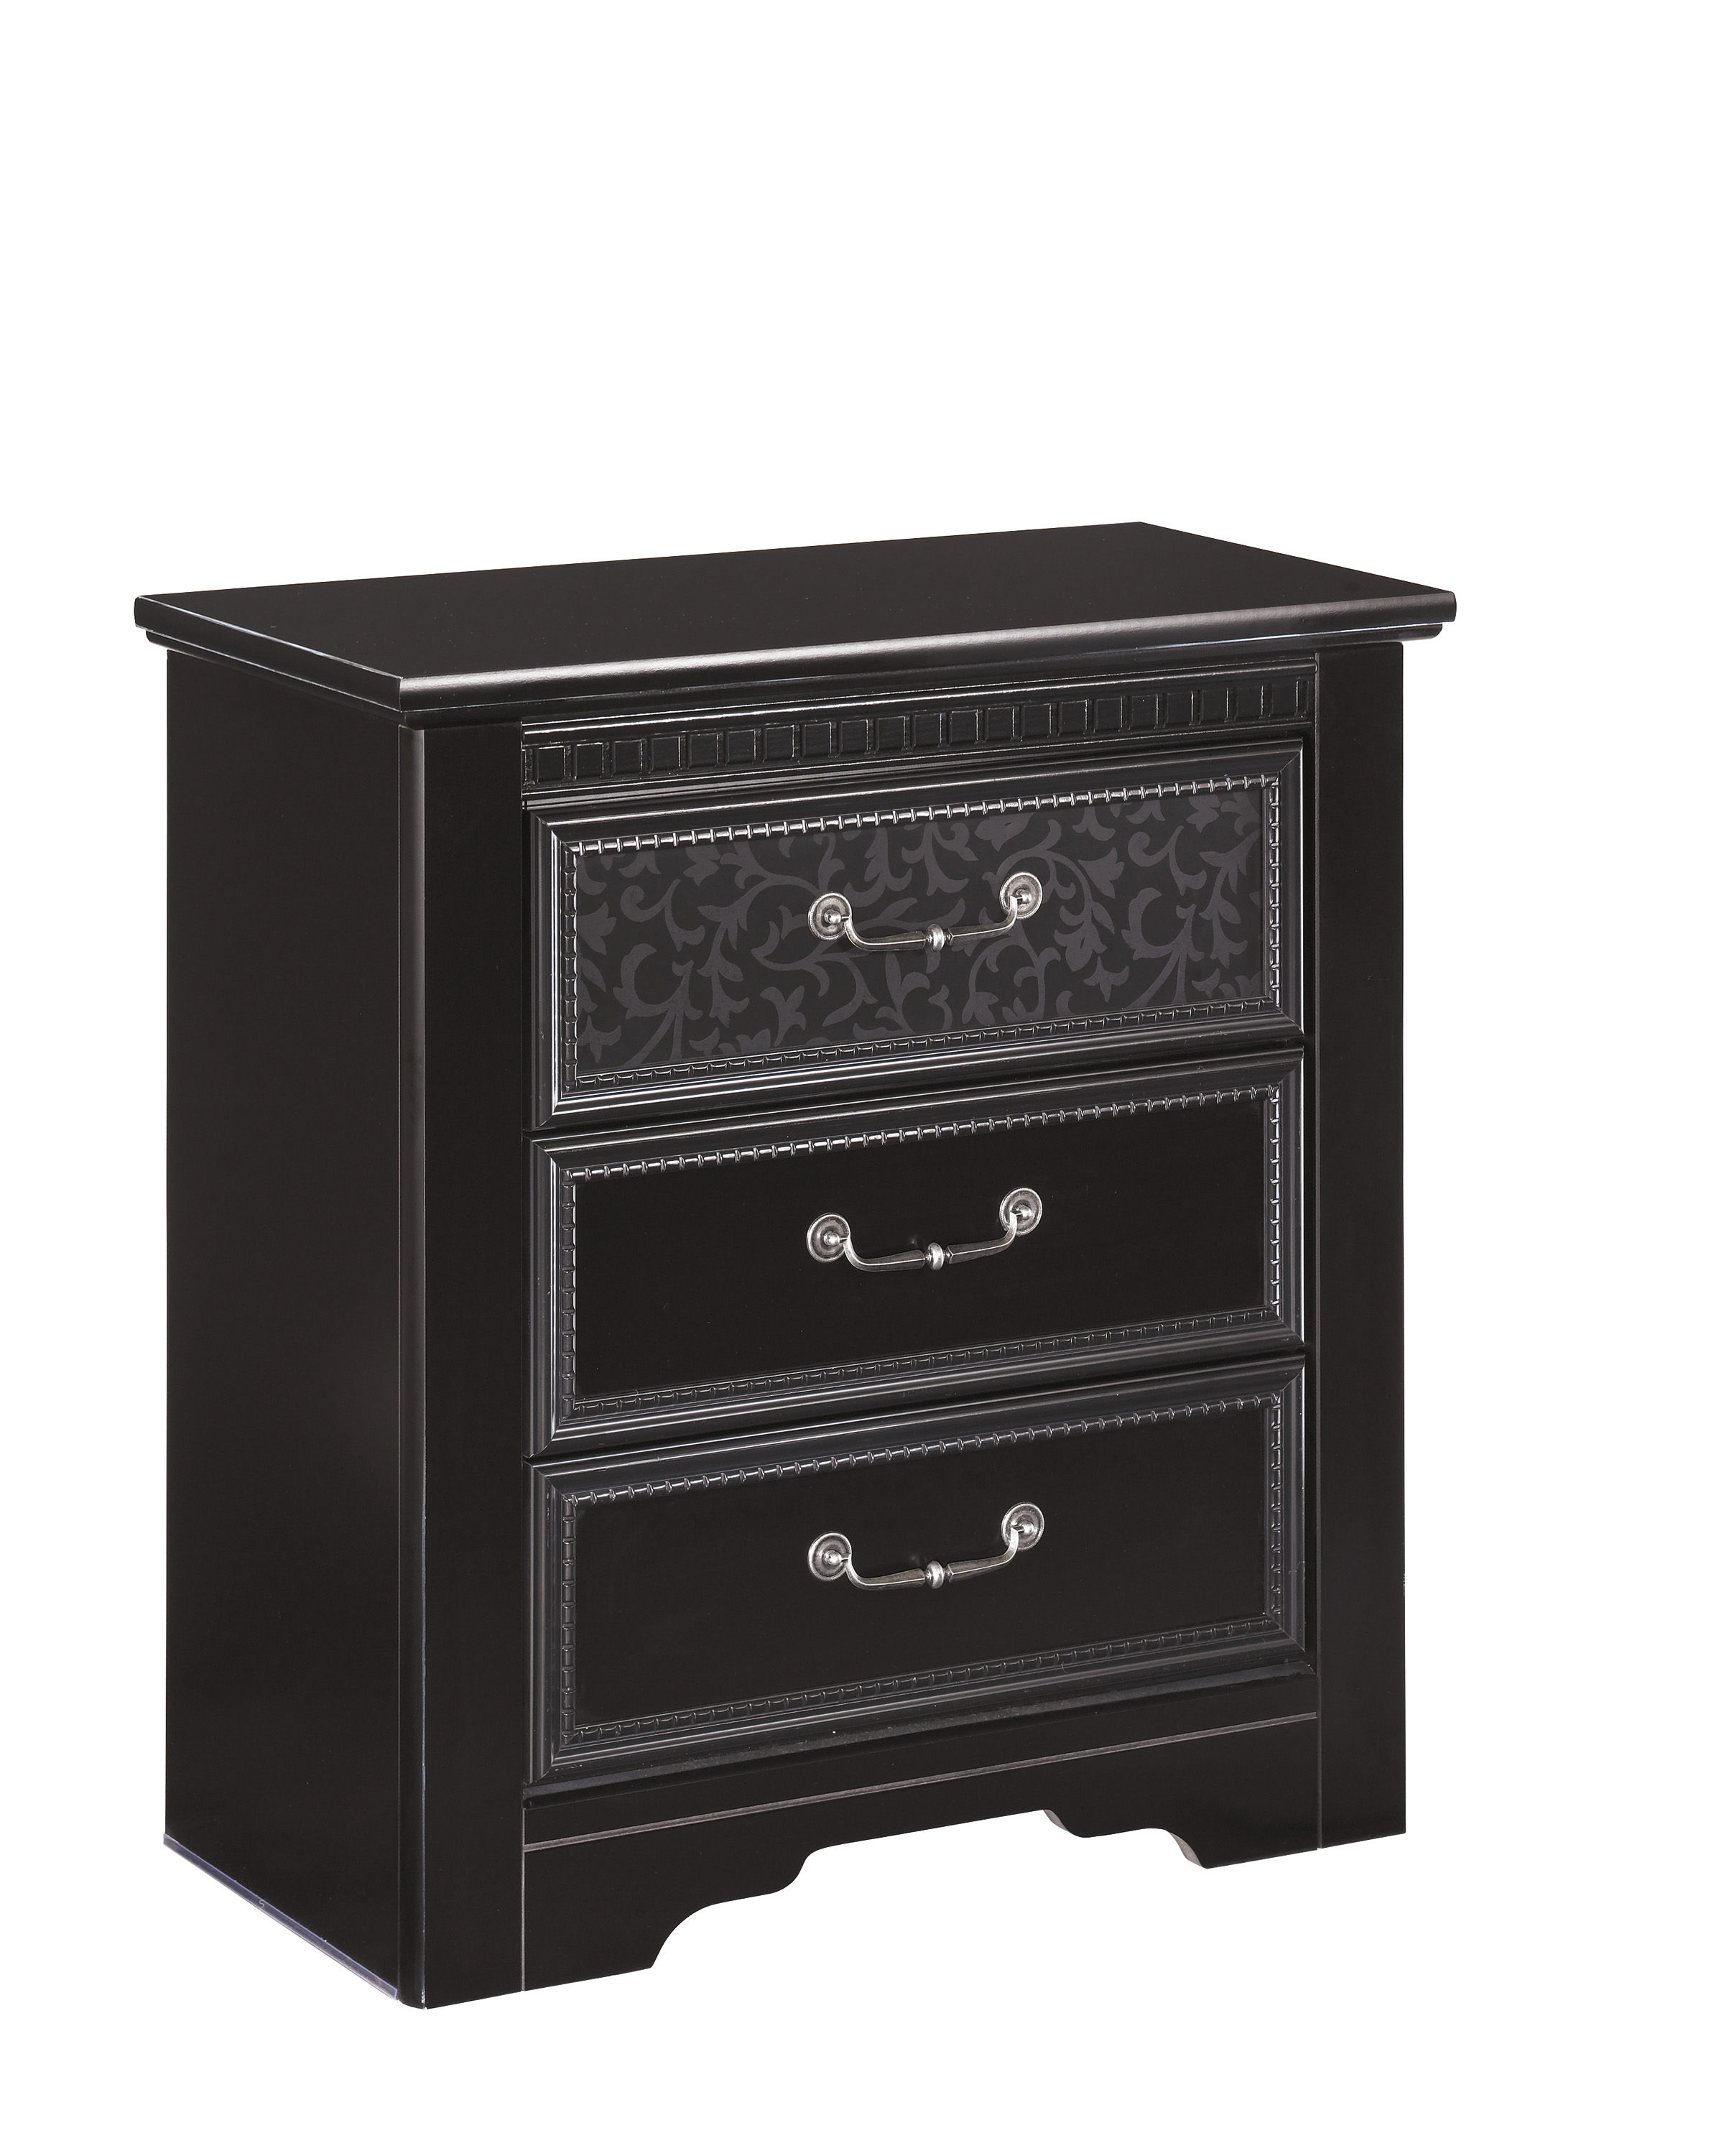 Cavallino Traditional Black Wood Large Night Stand | The Classy Home